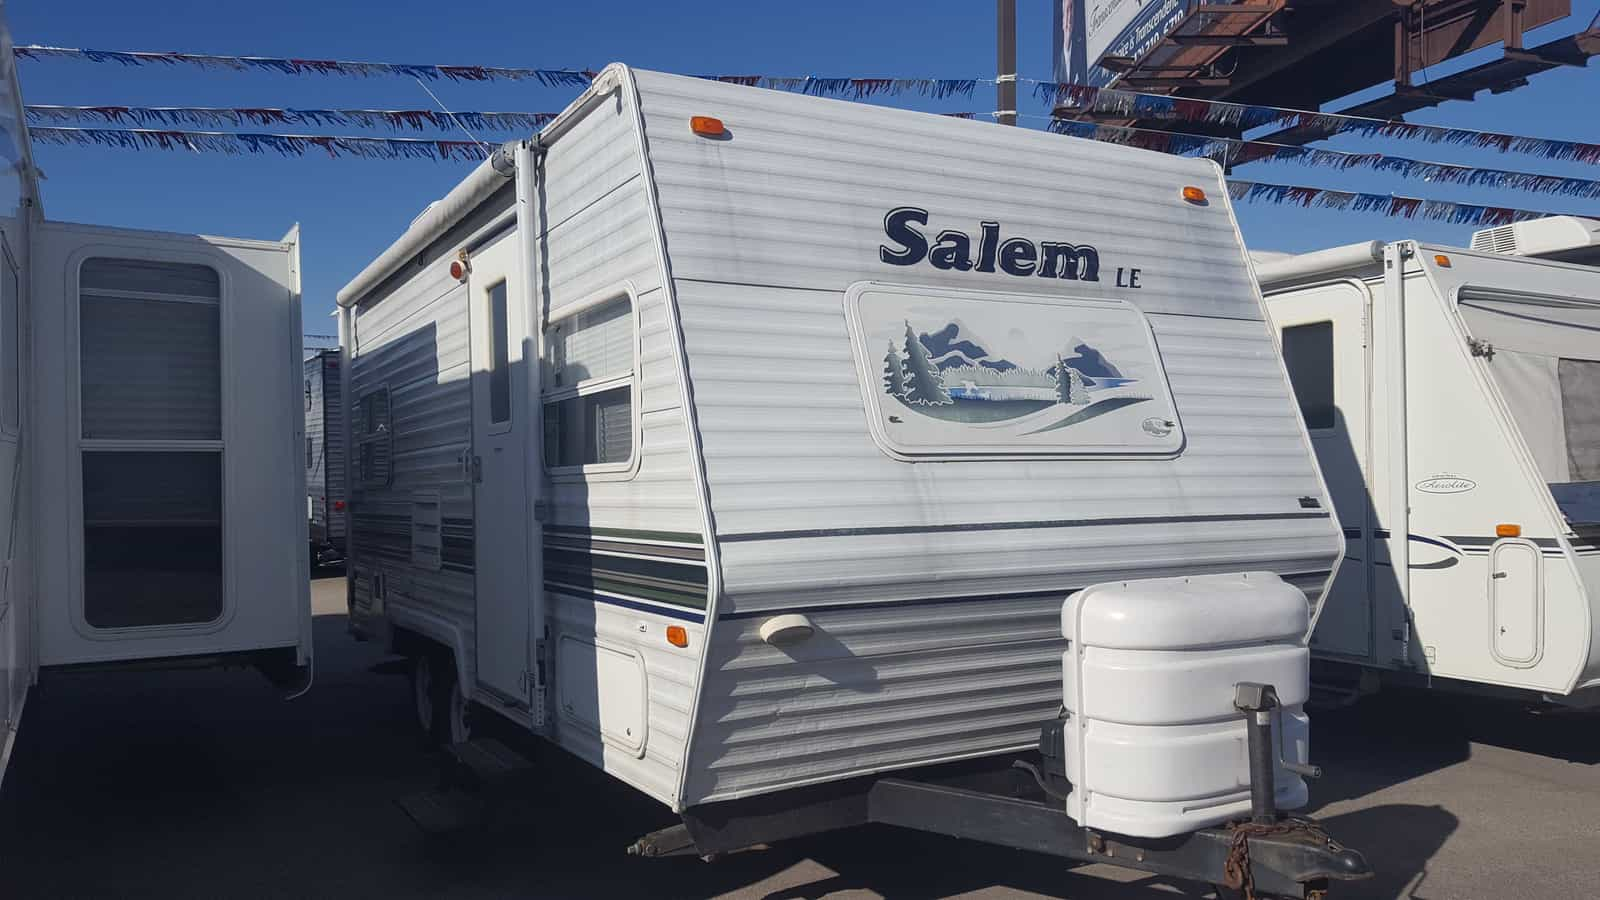 USED 2003 Forest River SALEM LE 19FD - American RV